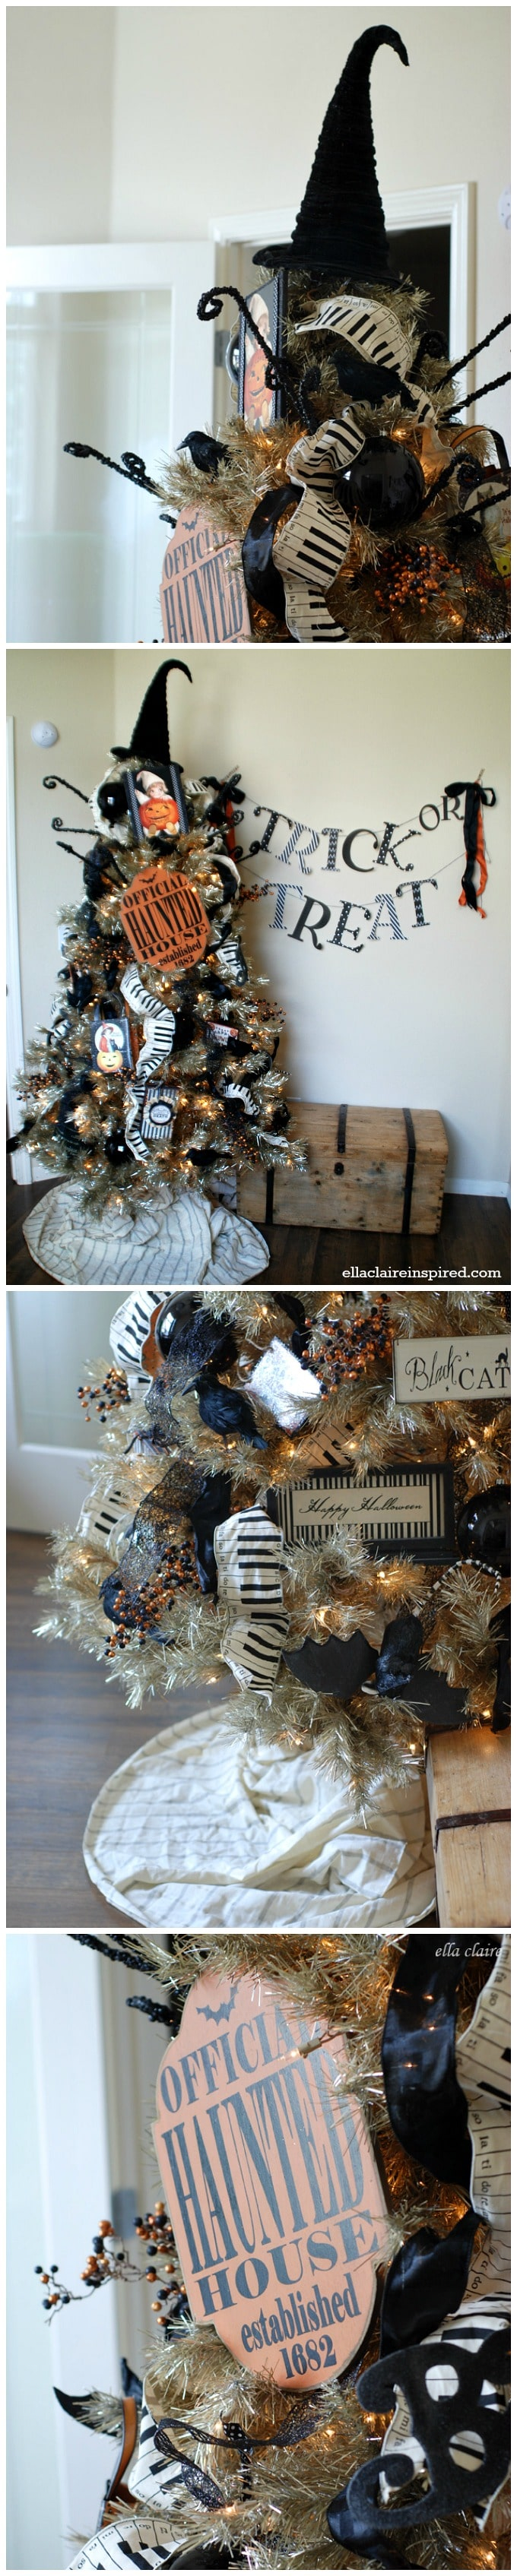 I love this fun Halloween Tree! A fun vintage tinsel tree decorated with handmade and repurposed Halloween decorations.